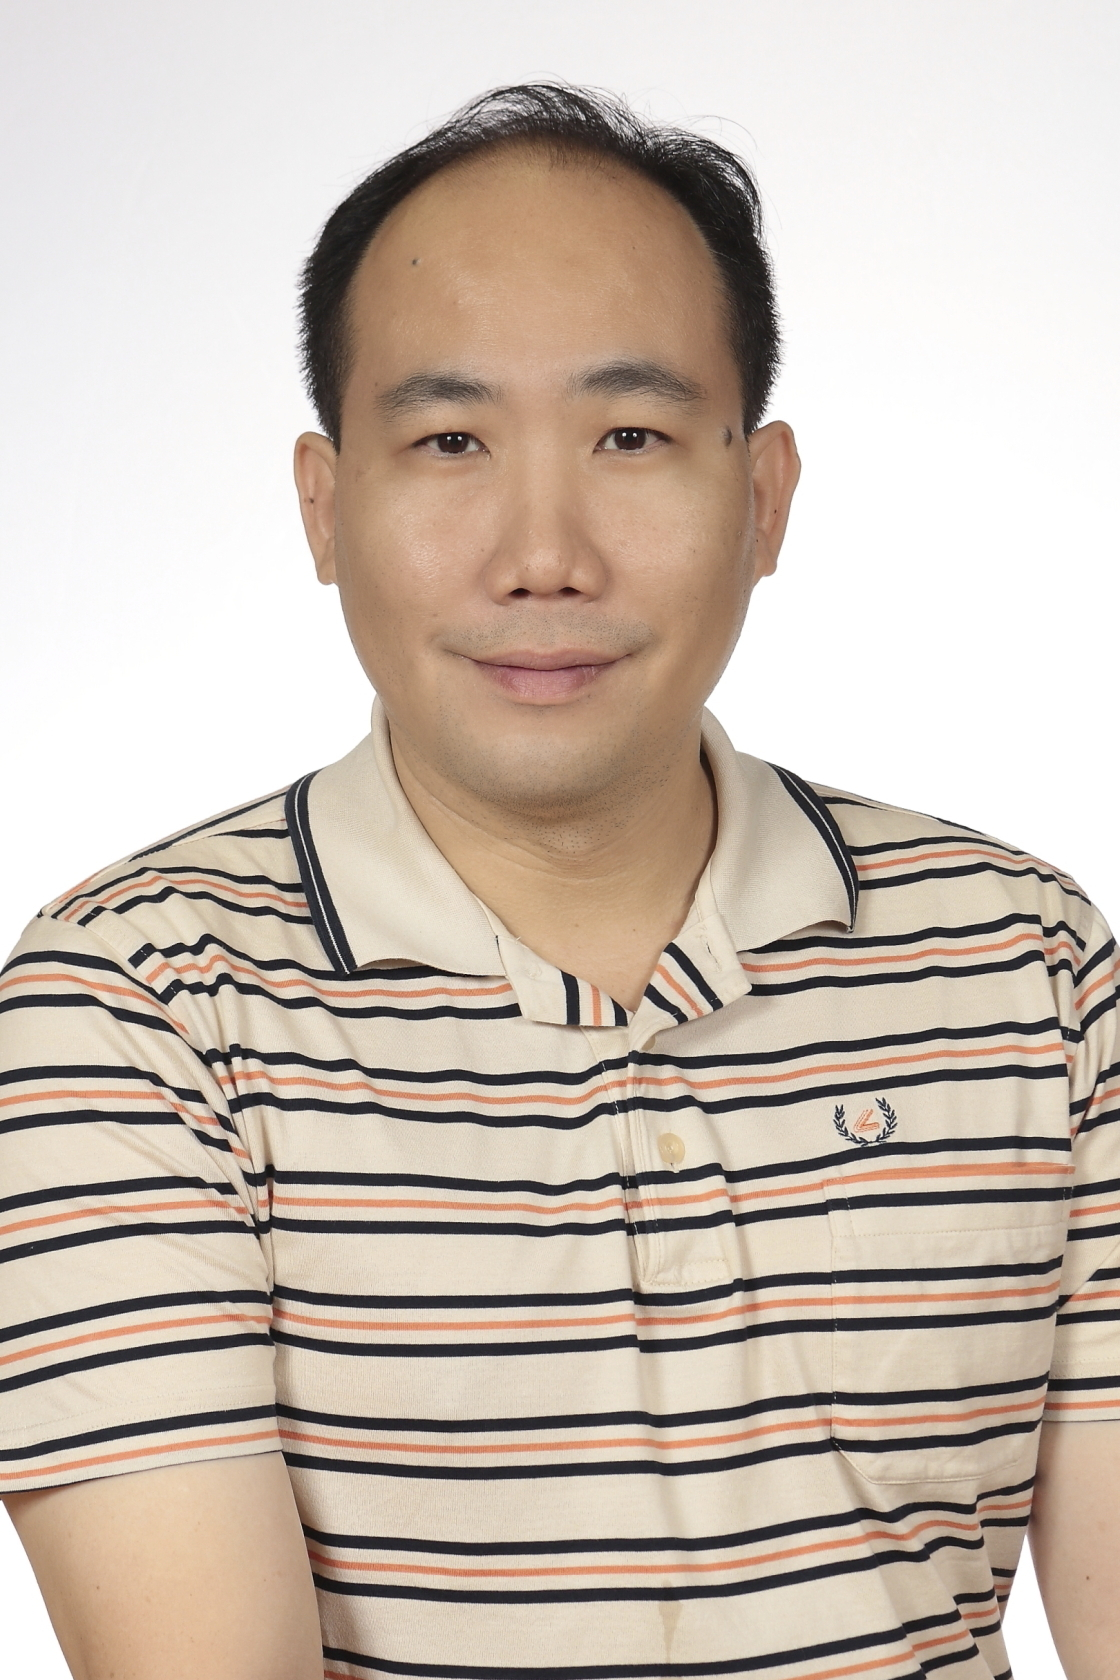 Mr Adrian Lau Boon Heng.JPG